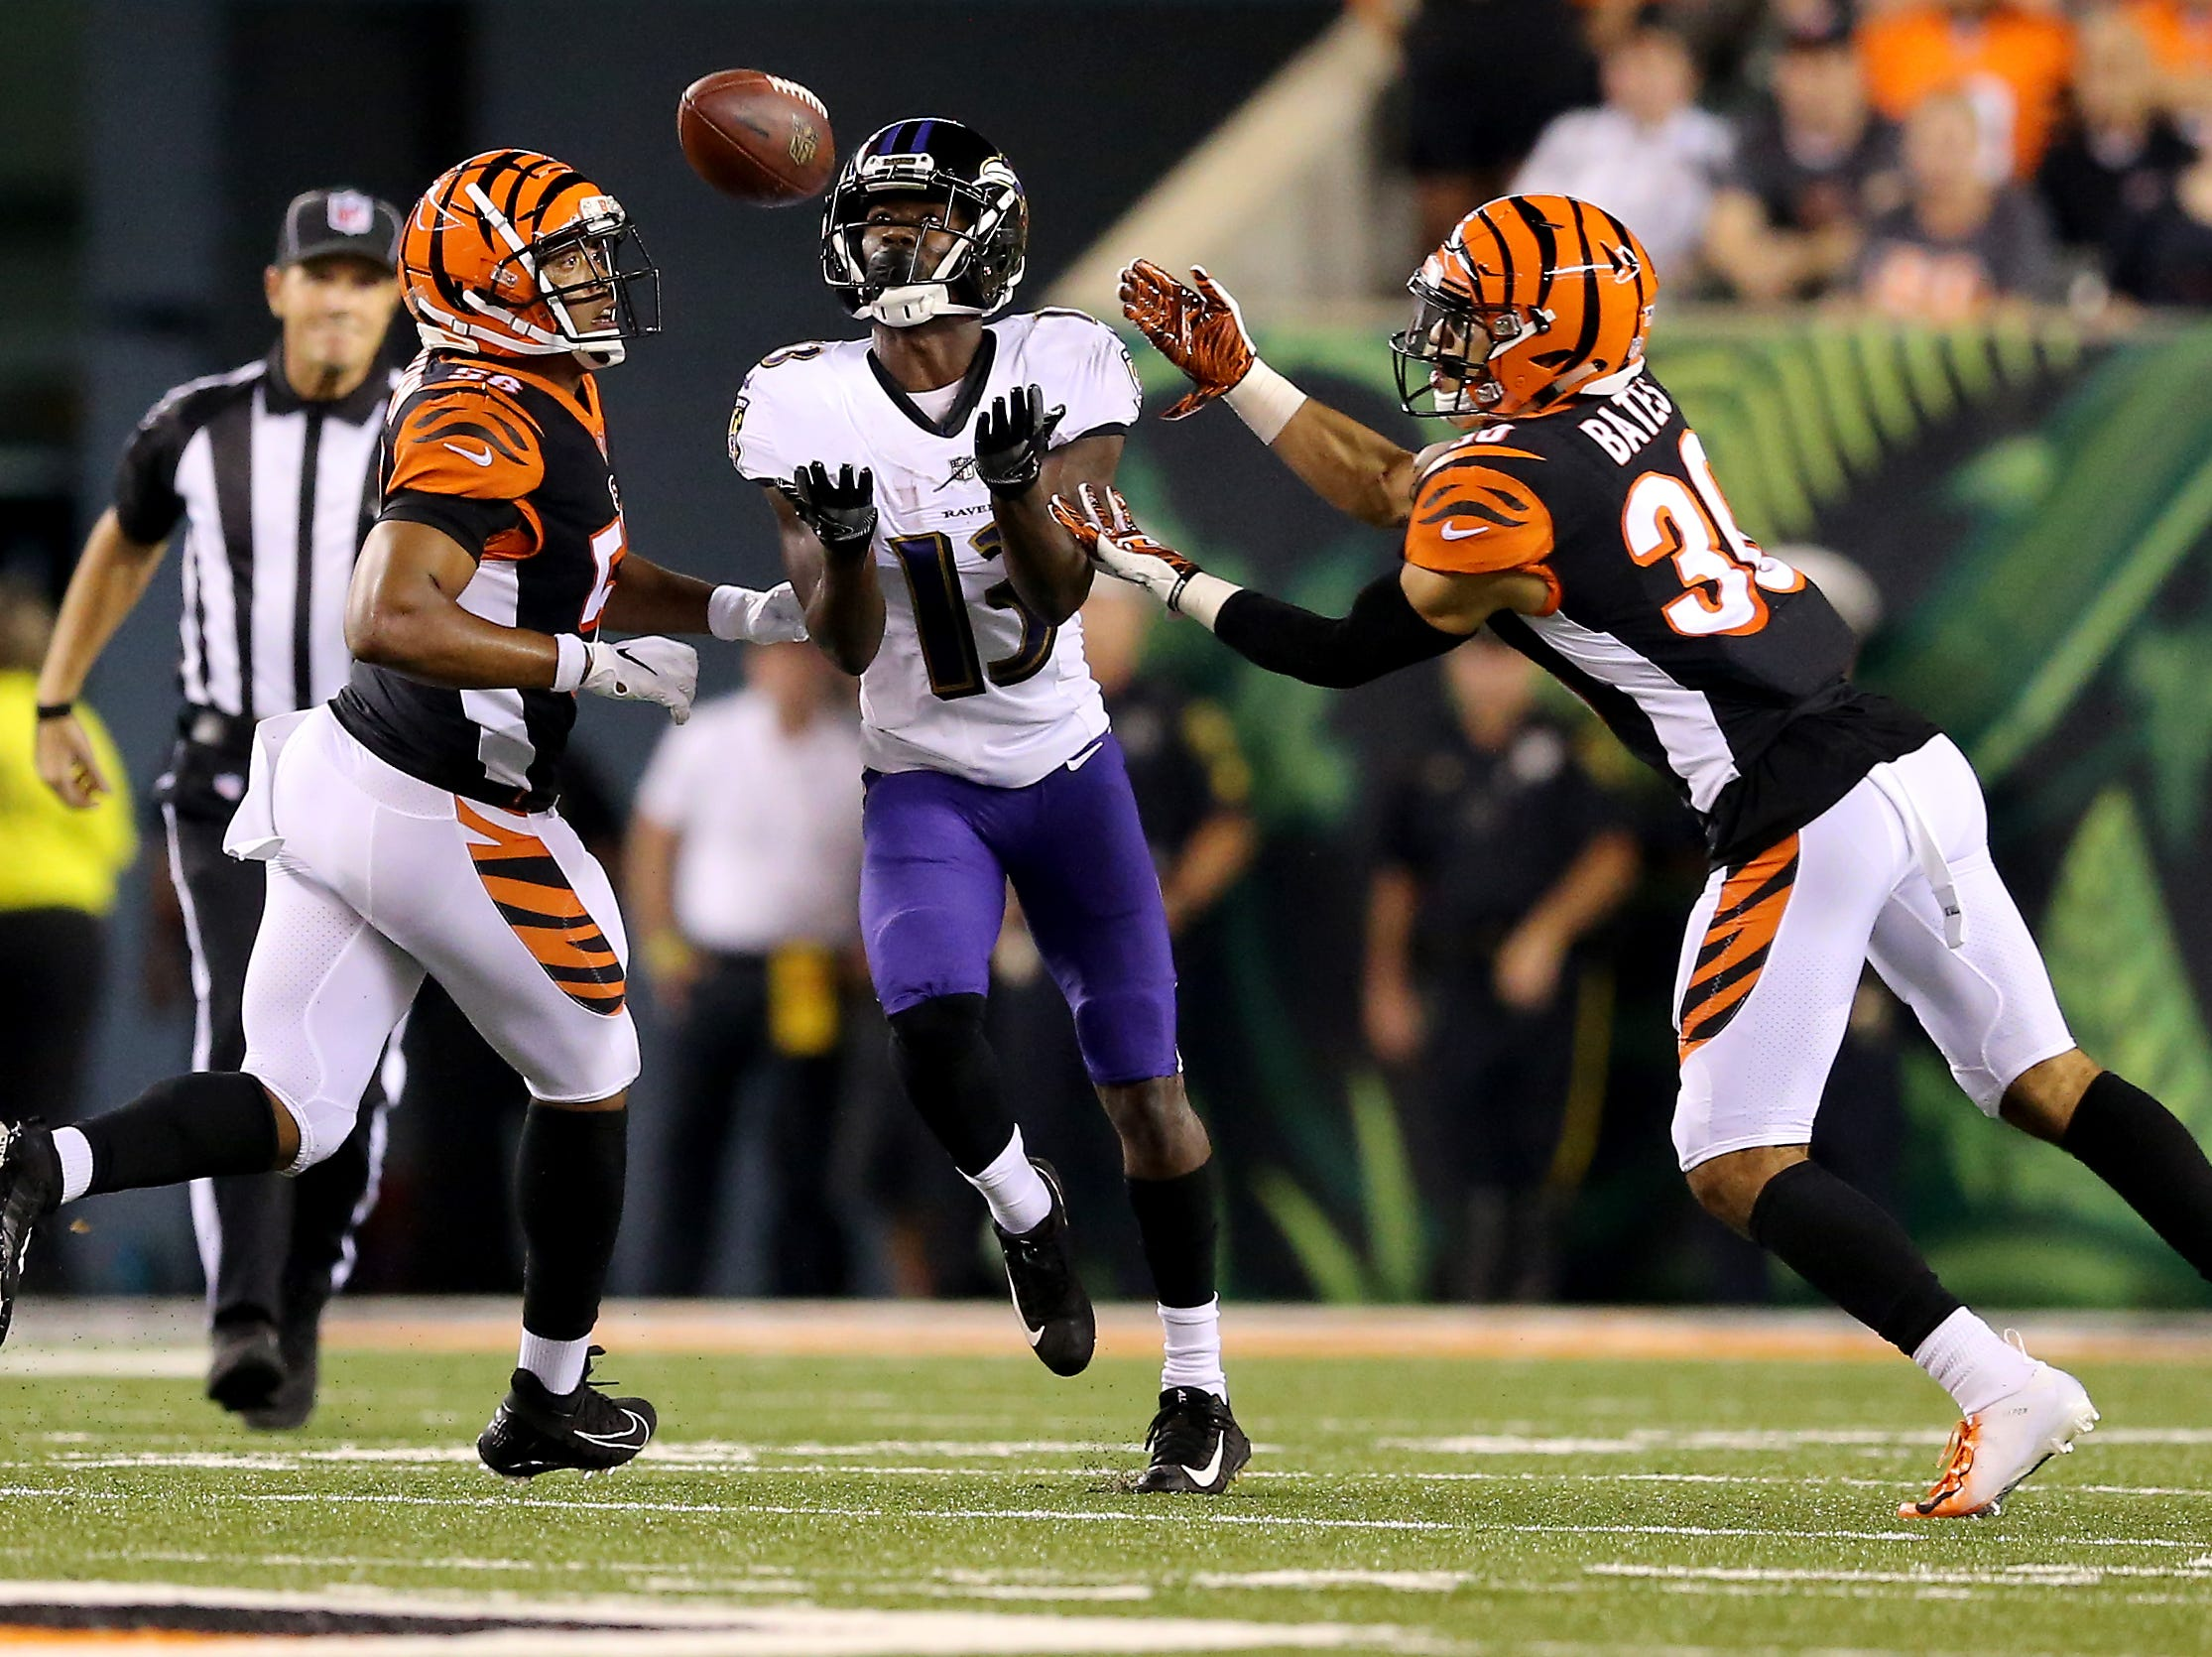 Cincinnati Bengals defensive back Jessie Bates (30) goes for an interception in the second quarter during the Week 2 NFL football game between the Baltimore Ravens and the Cincinnati Bengals, Thursday, Sept. 13, 2018, Paul Brown Stadium in Cincinnati.